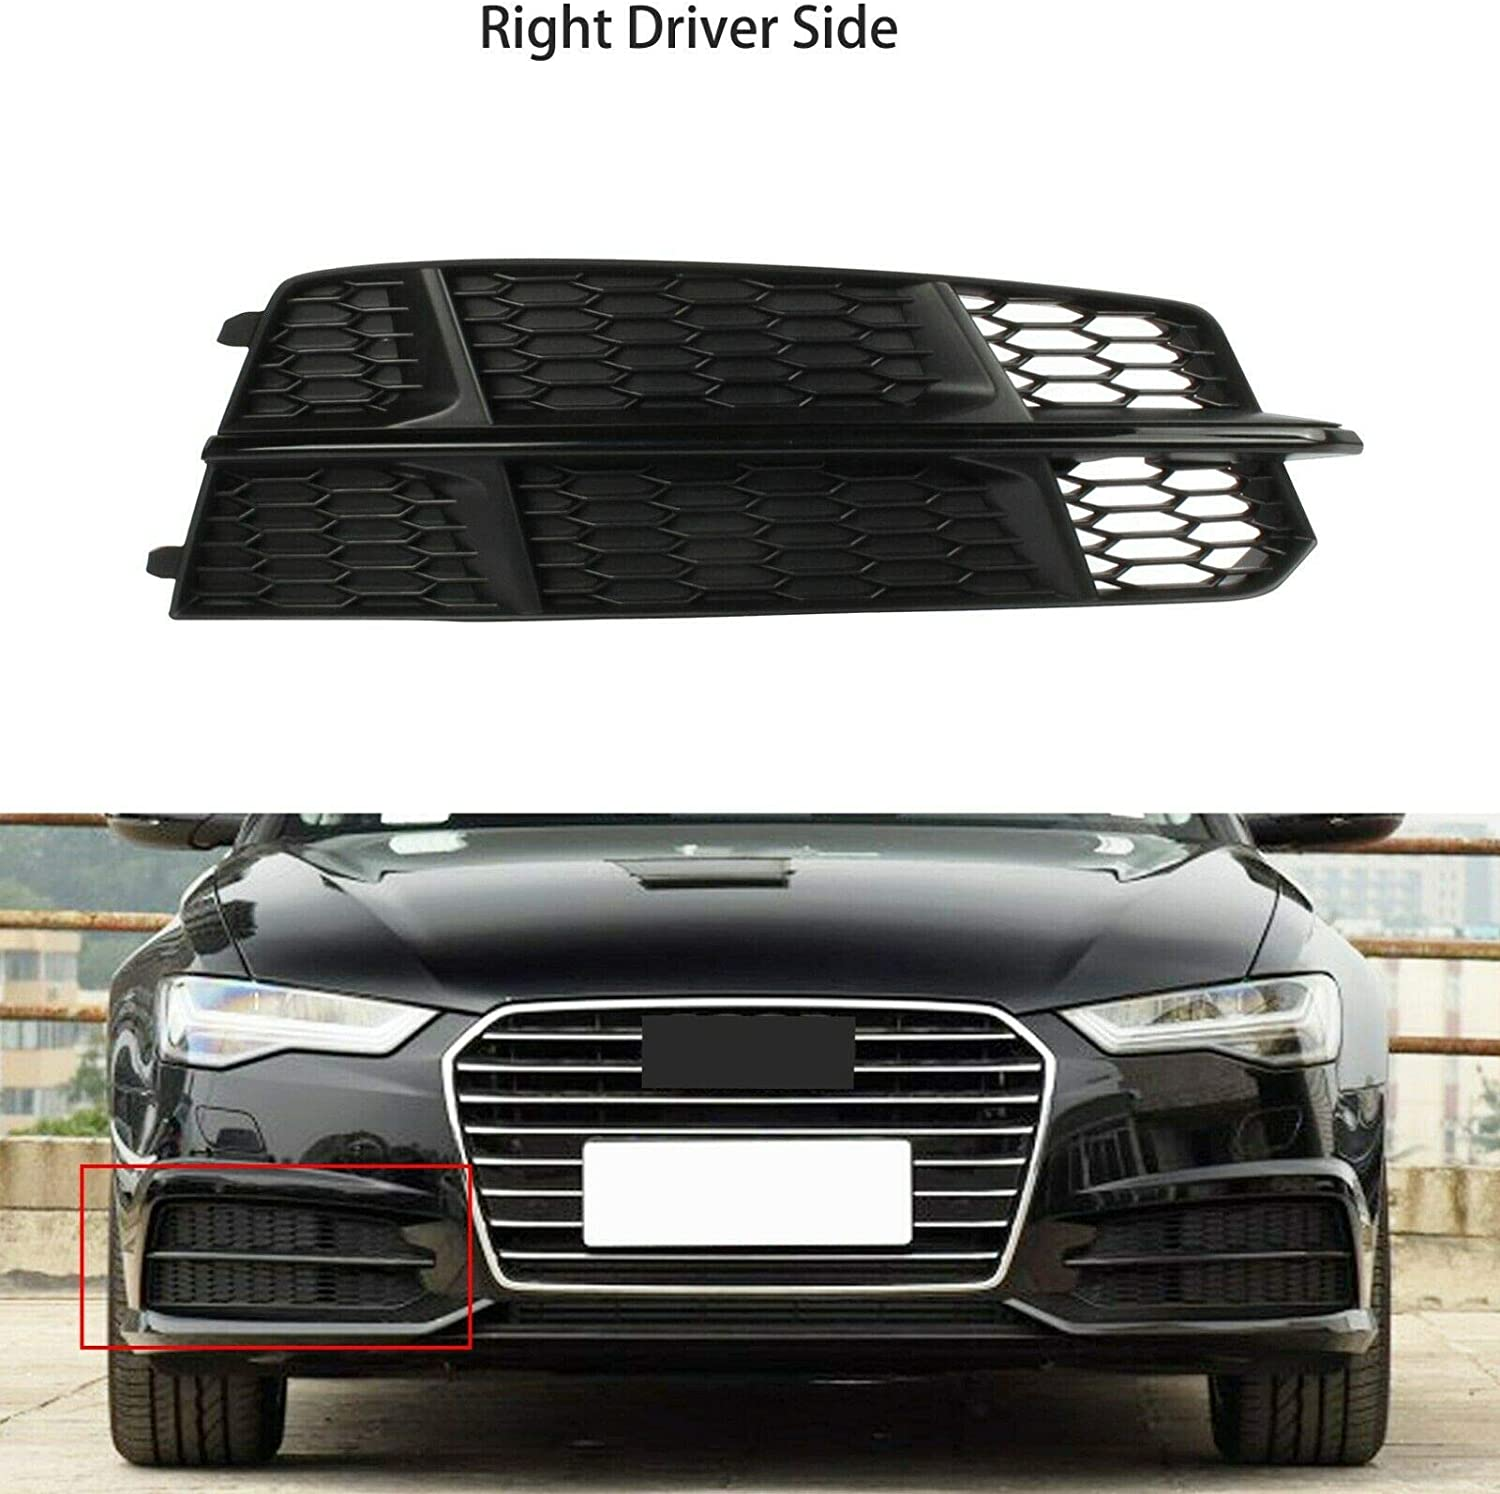 MUTUSAISI Fit for Audi A6 S-Line 2016-2018 Right Front Grille Honeycomb Grill Cover Black